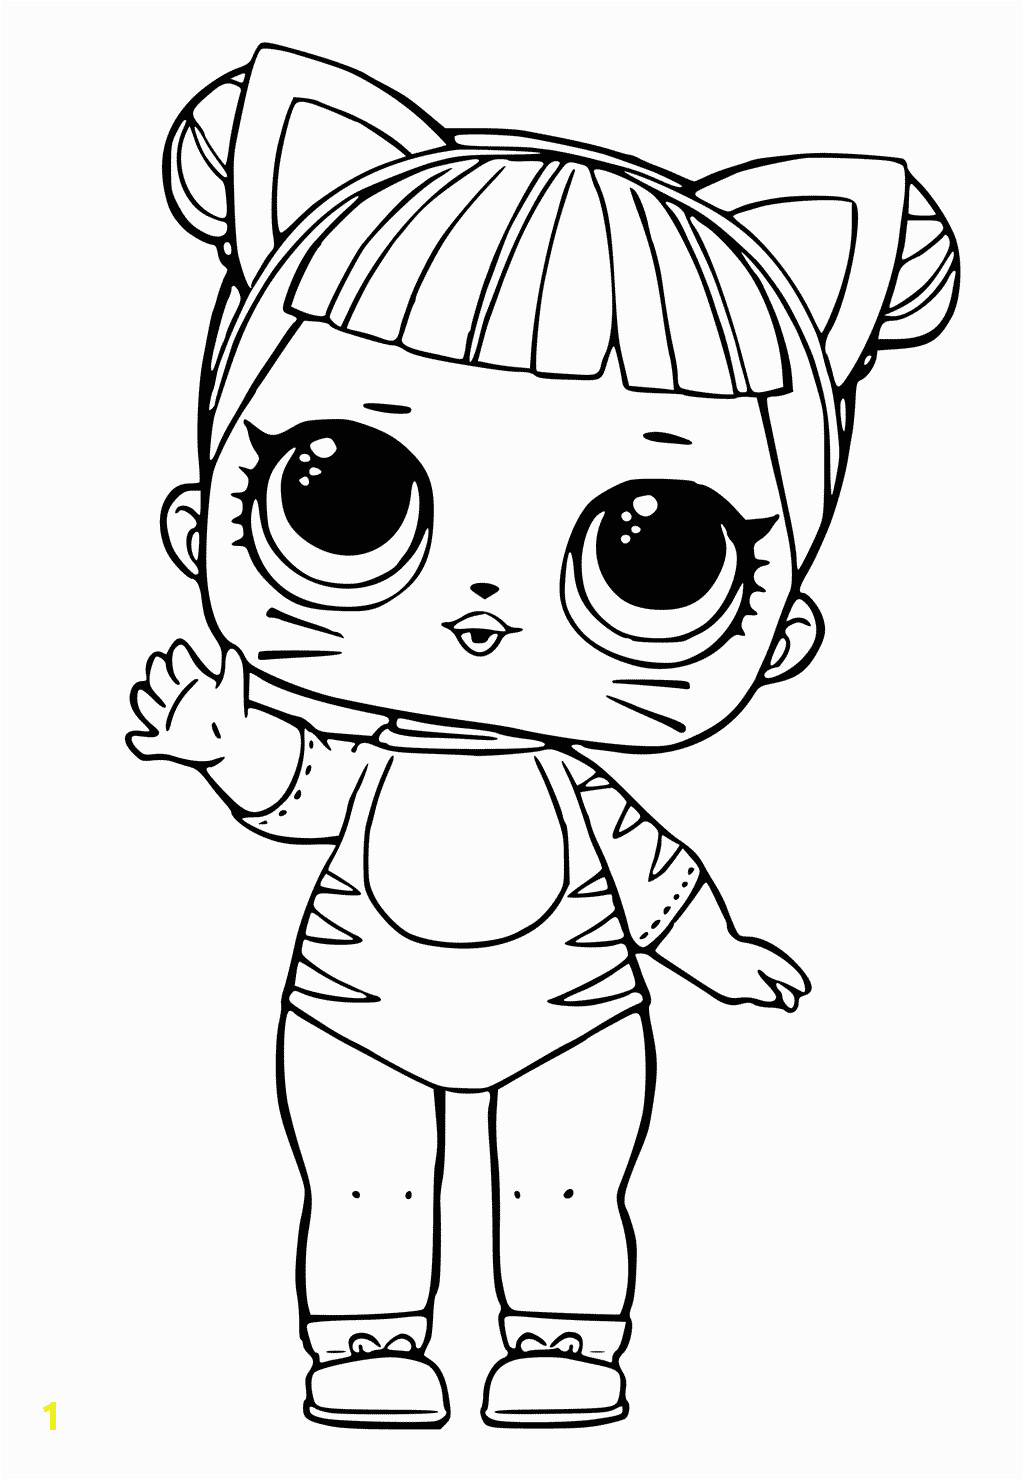 Big Cat Coloring Pages Lol Doll Coloring Pages